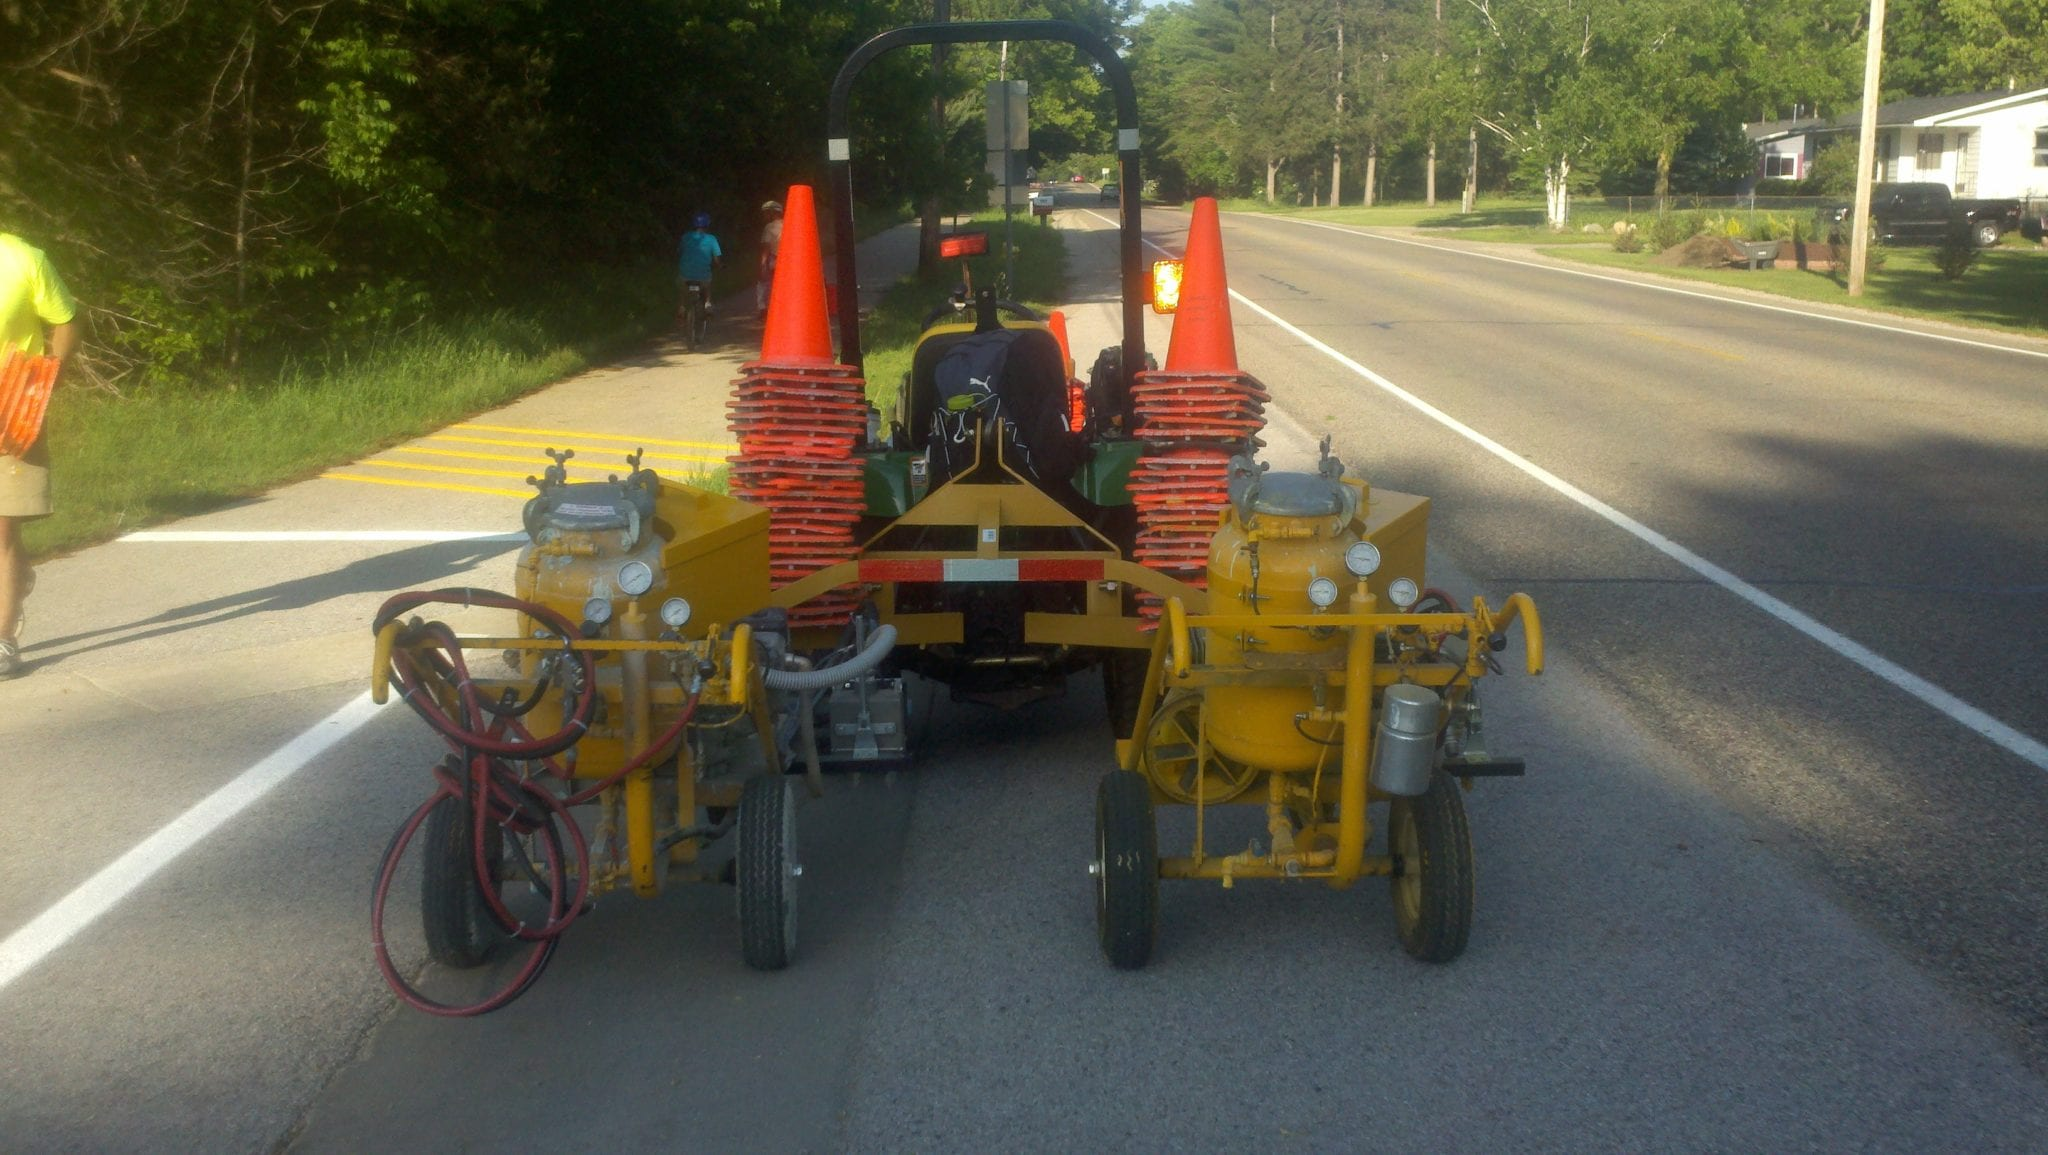 Line striping professionals advanced pavement marking for Parking lot painting equipment